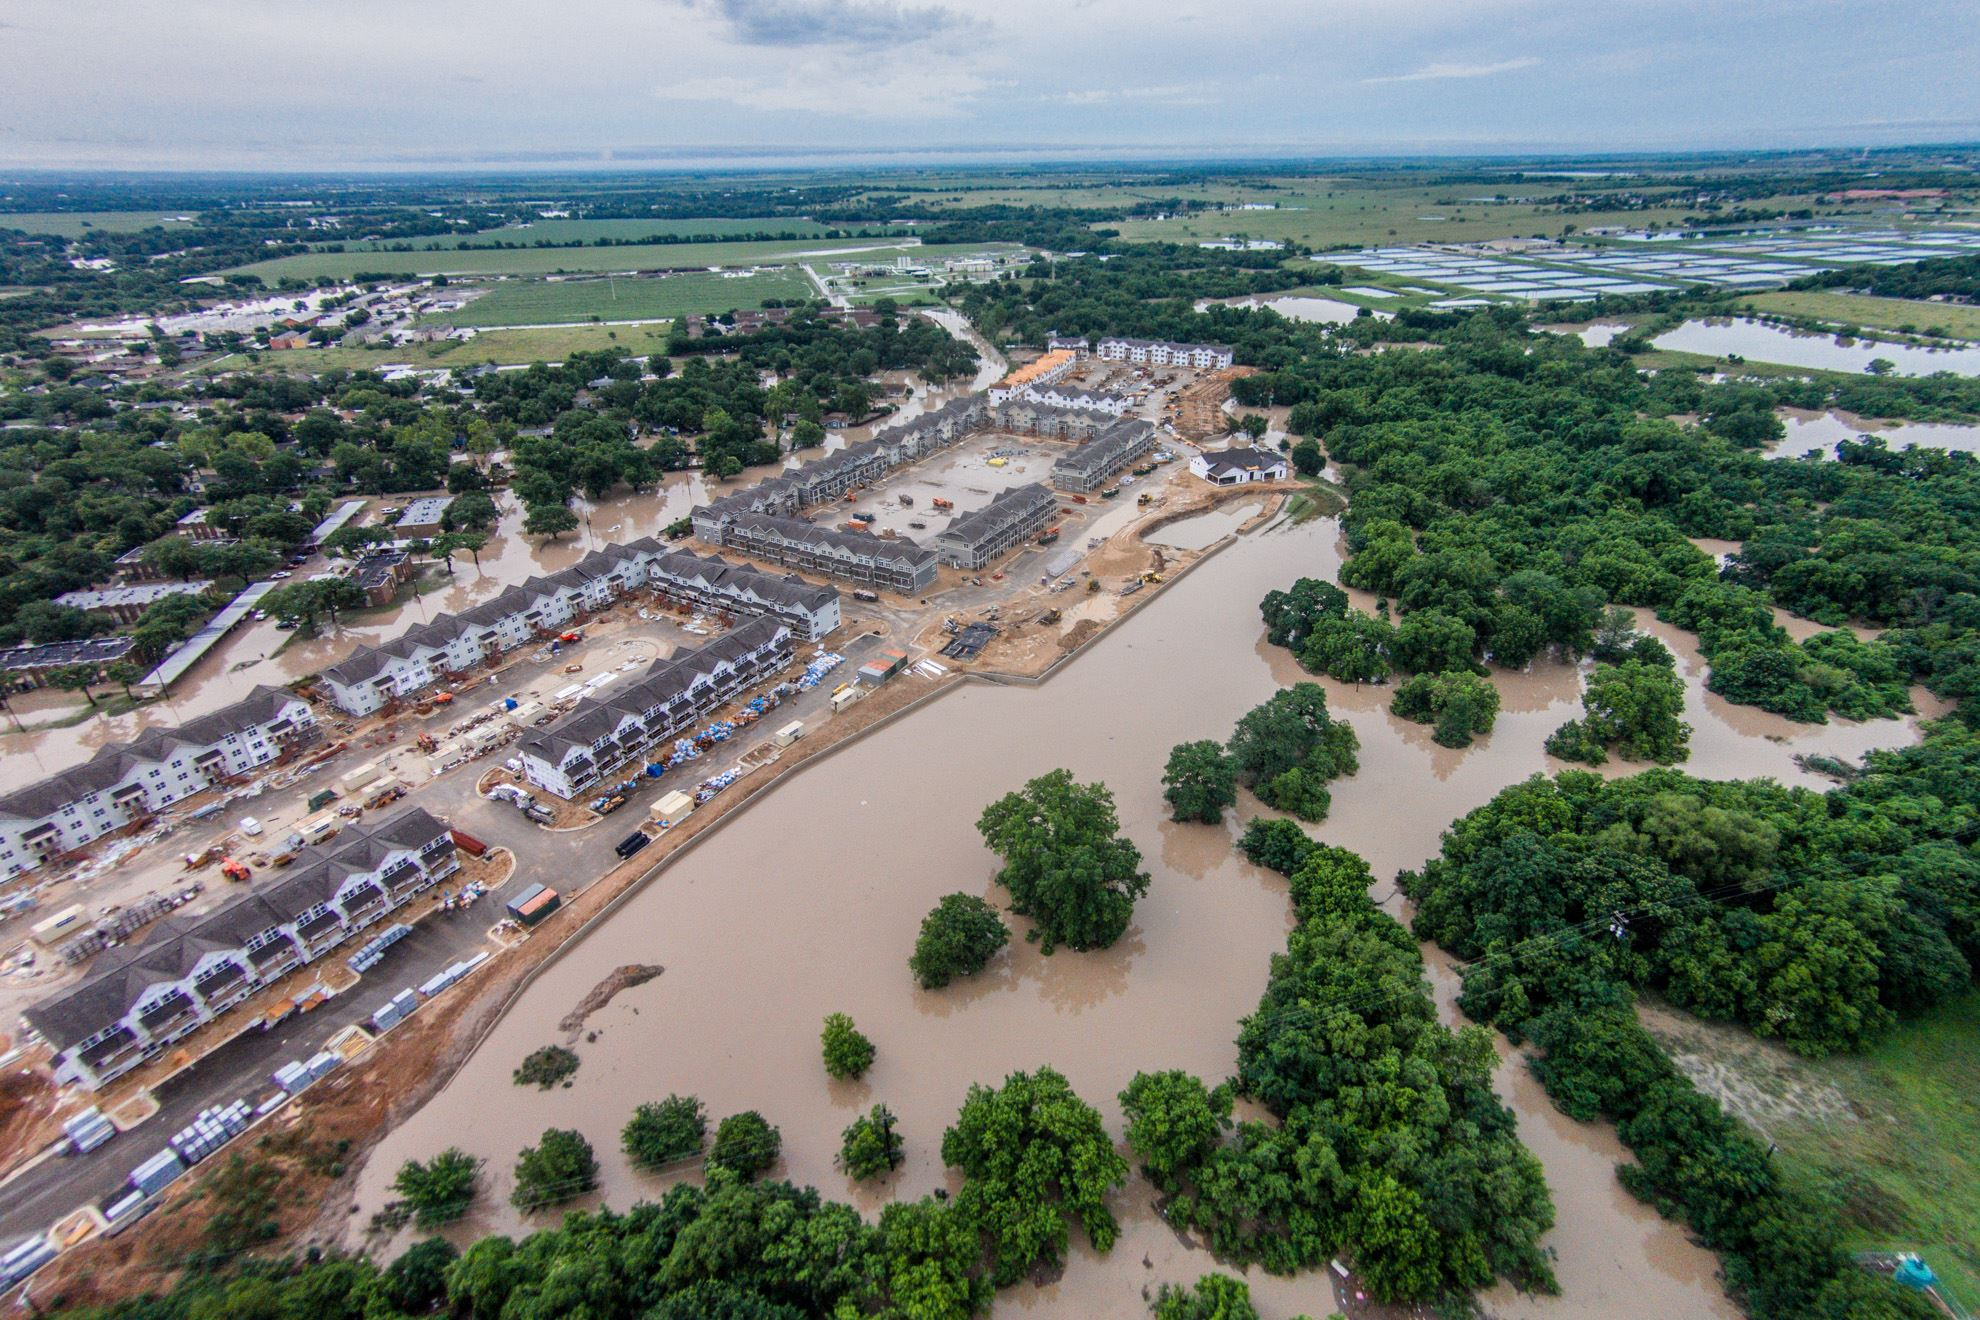 The Woodlands Texas Flooding >> Texas And Oklahoma Floods 2015: Flooded Properties In Central Texas Were Knowingly Built In Harm ...